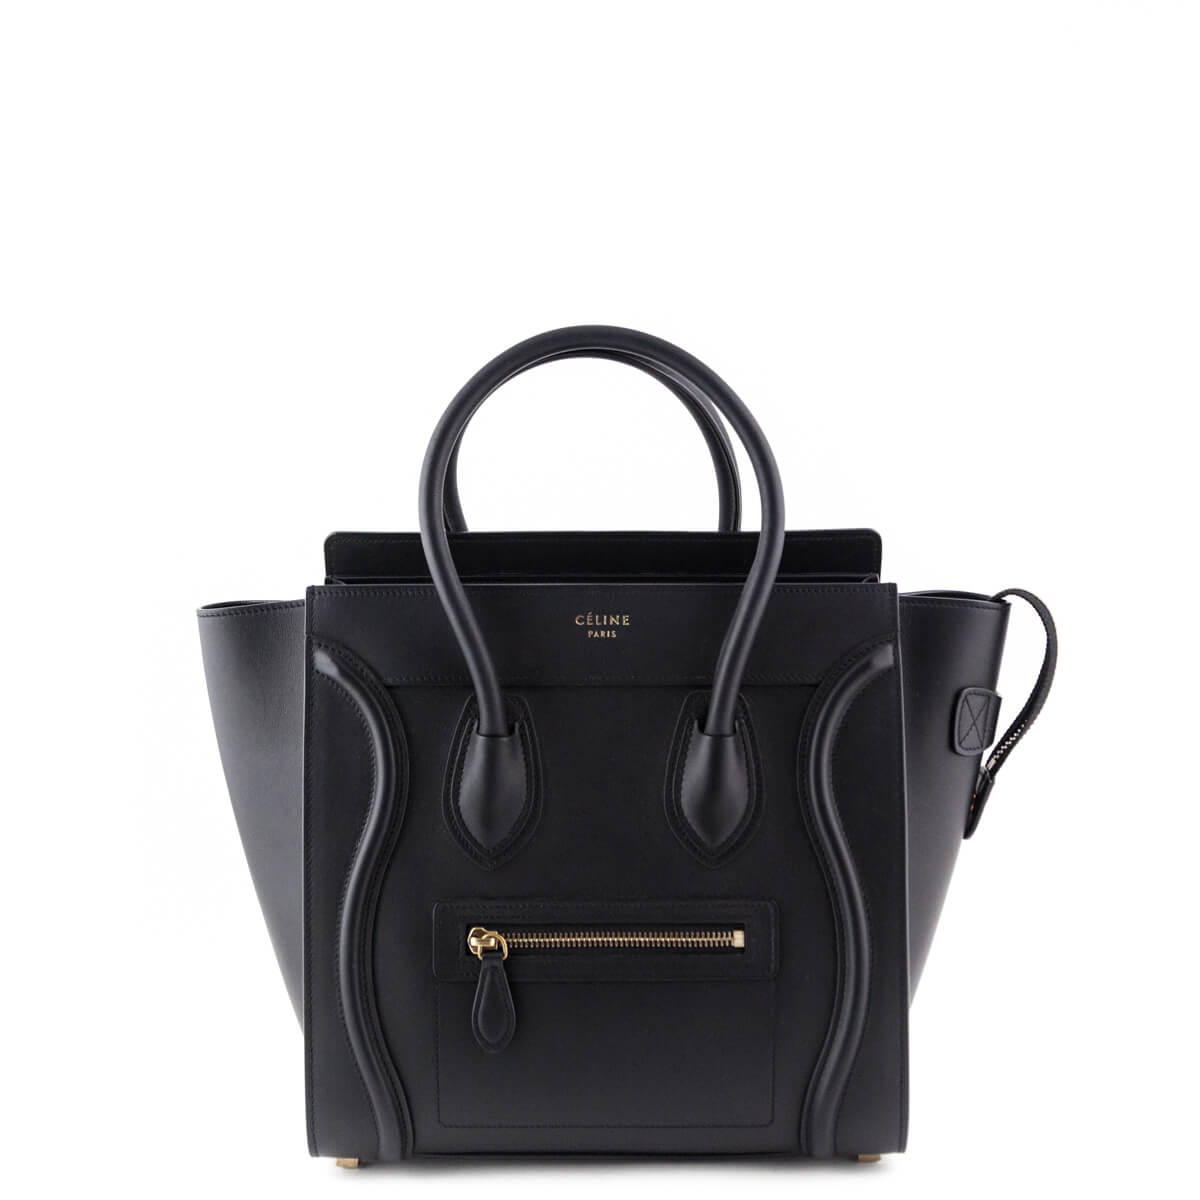 Celine Black Calfskin Micro Luggage Tote - LOVE that BAG - Preowned  Authentic Designer Handbags ... 1f7518d14e2e5